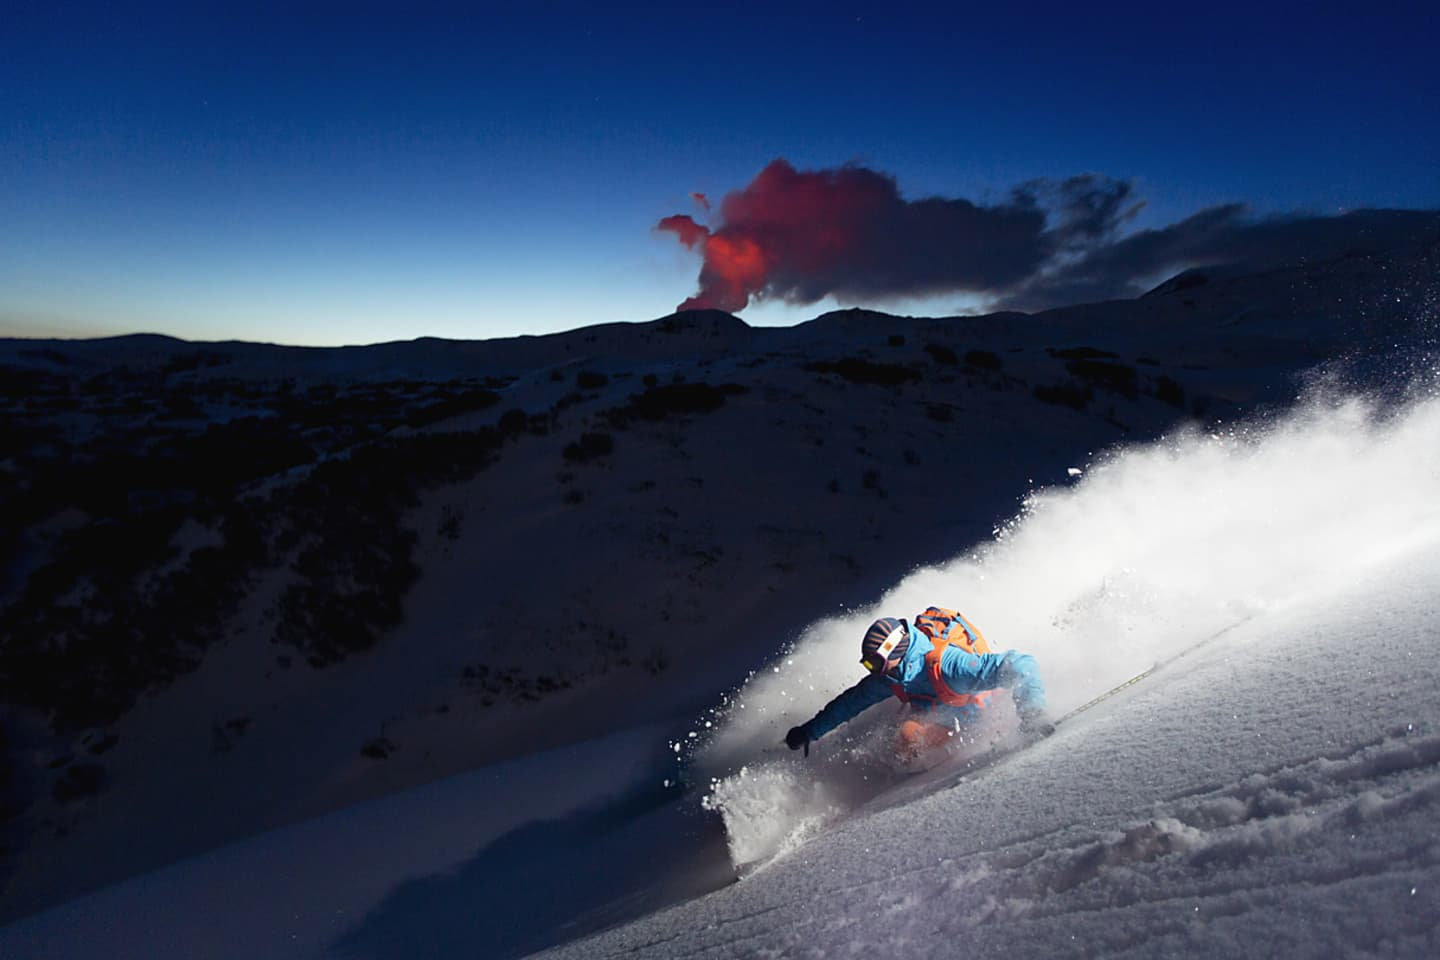 Oscar Hübinette enjoying some evening skiing with the red volcano plume of Tolbachik on the horizon.